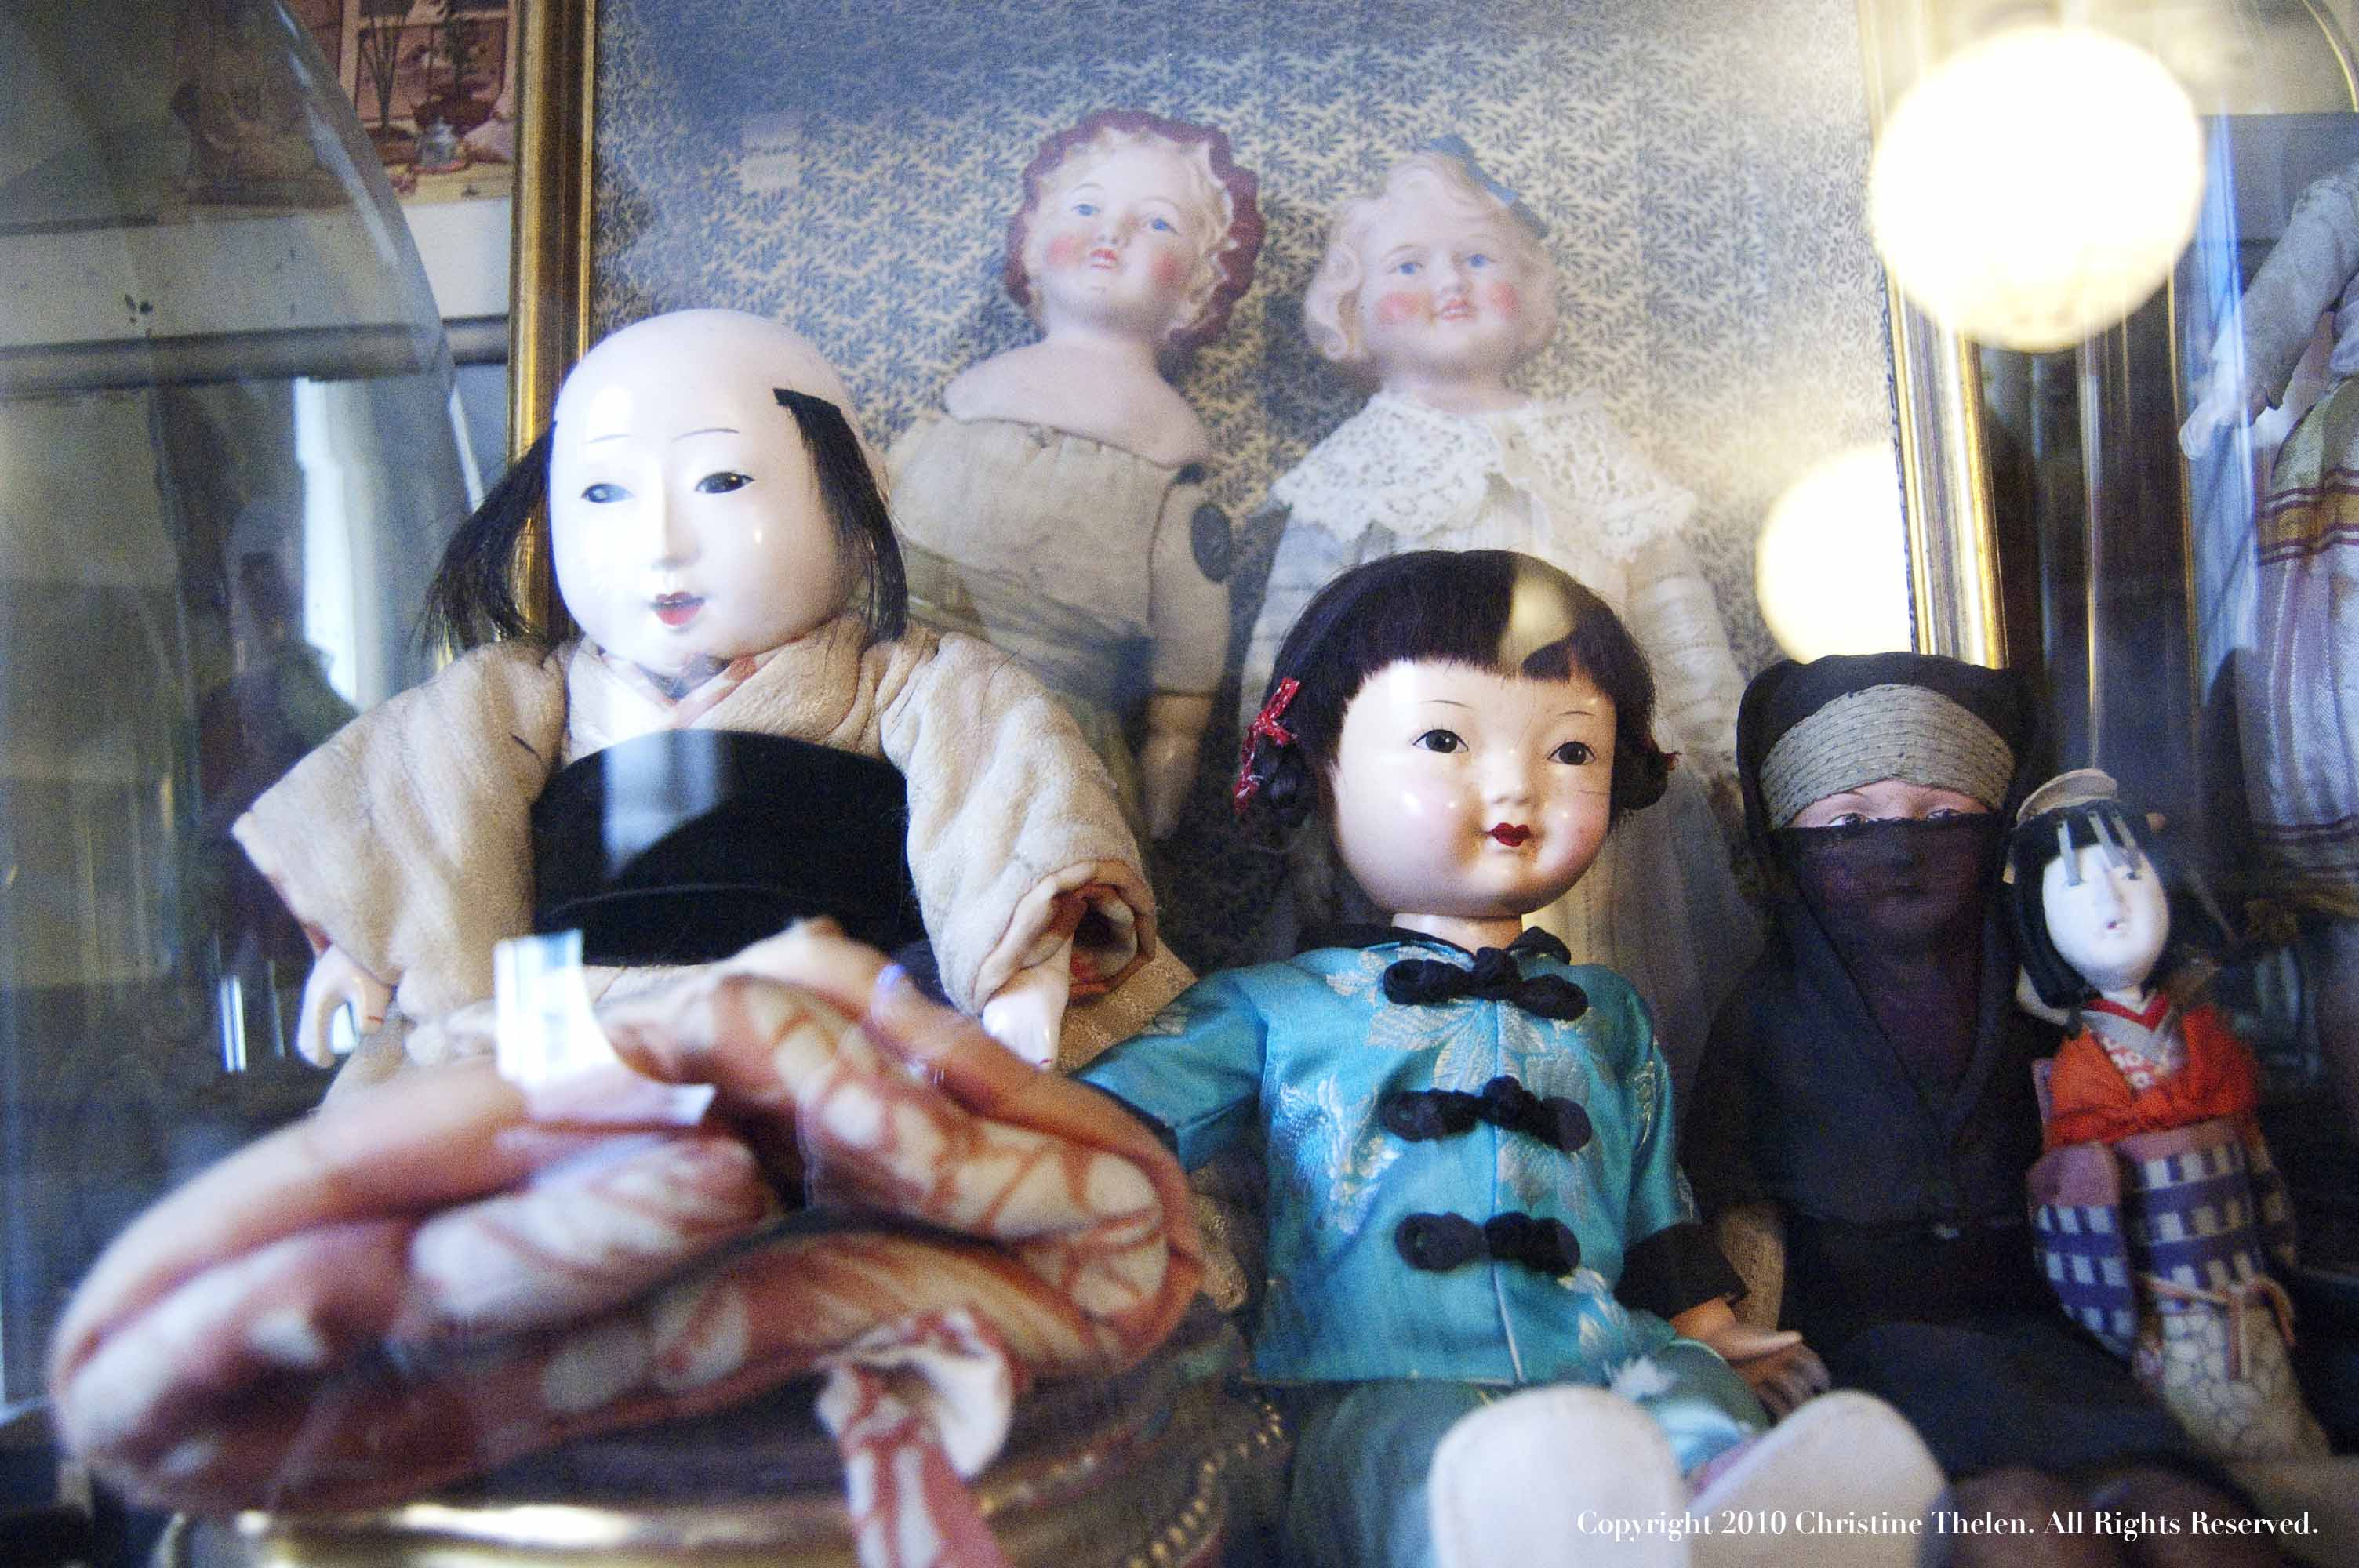 Wax Doll Collection - Pollock's Toy Museum - Atlas Obscura Blog